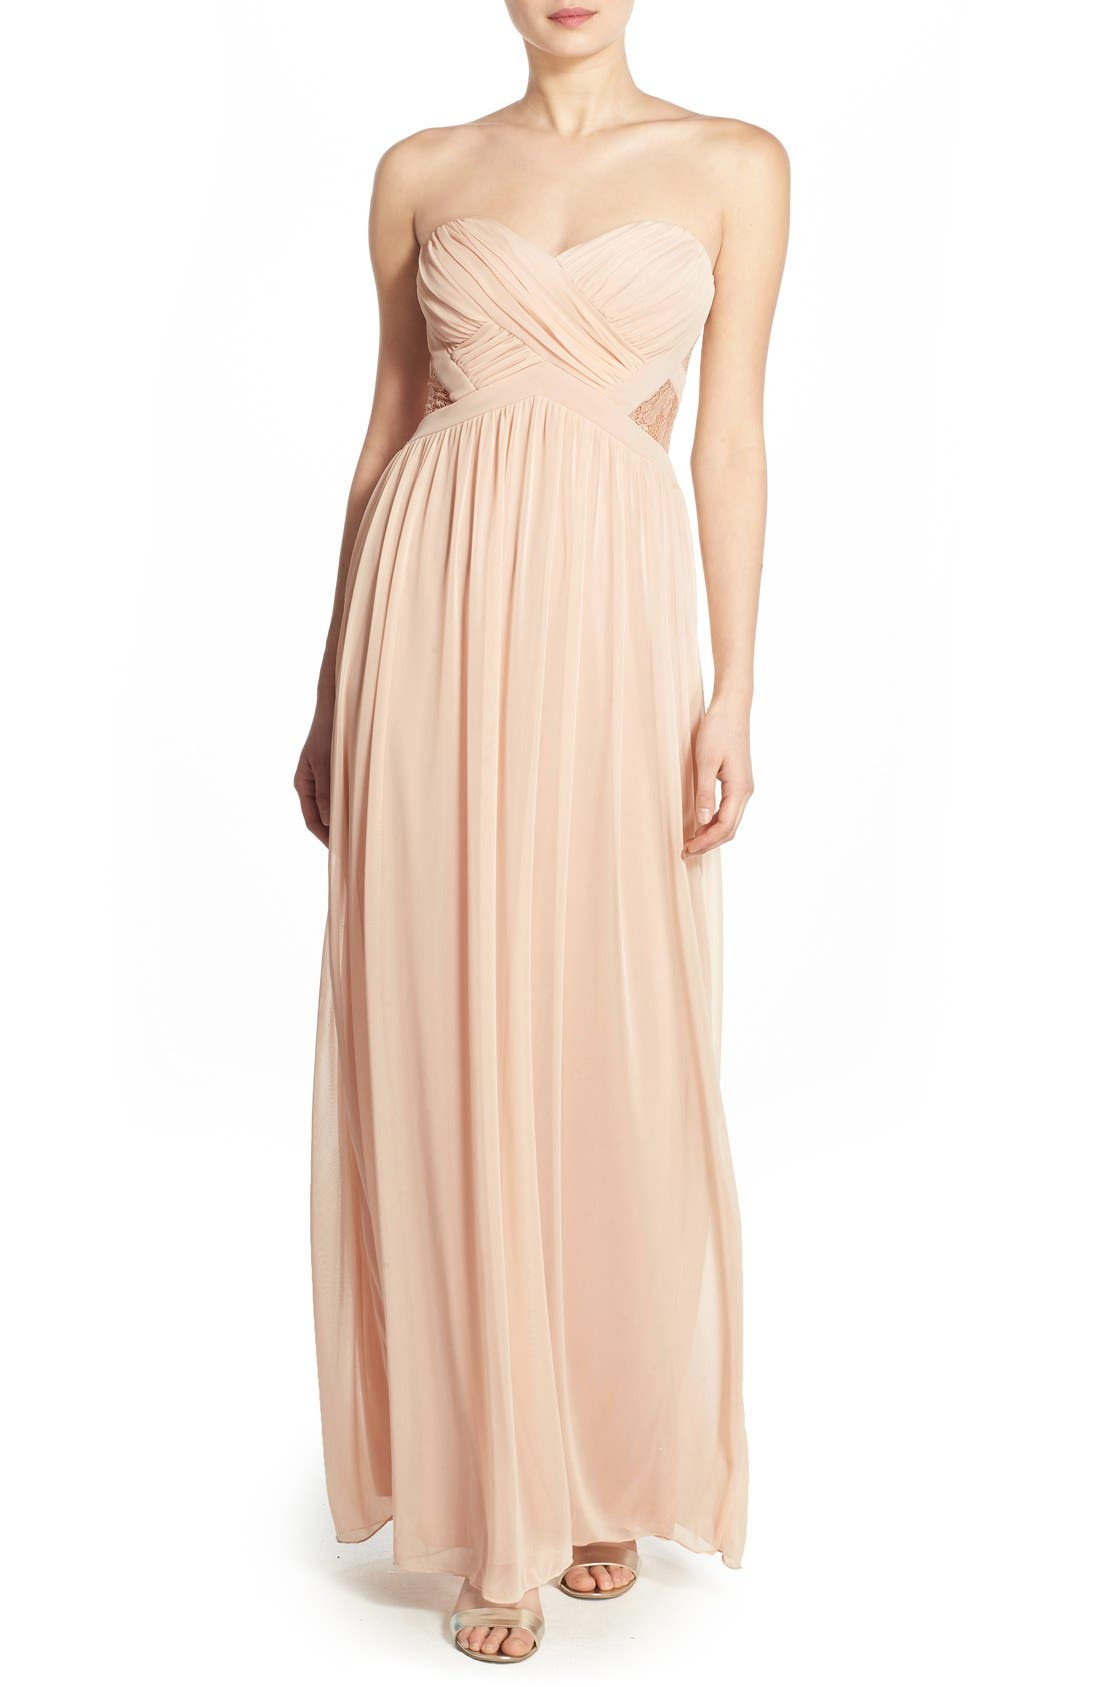 Main Image - Way-In 'Diana' Lace Inset Strapless Gown